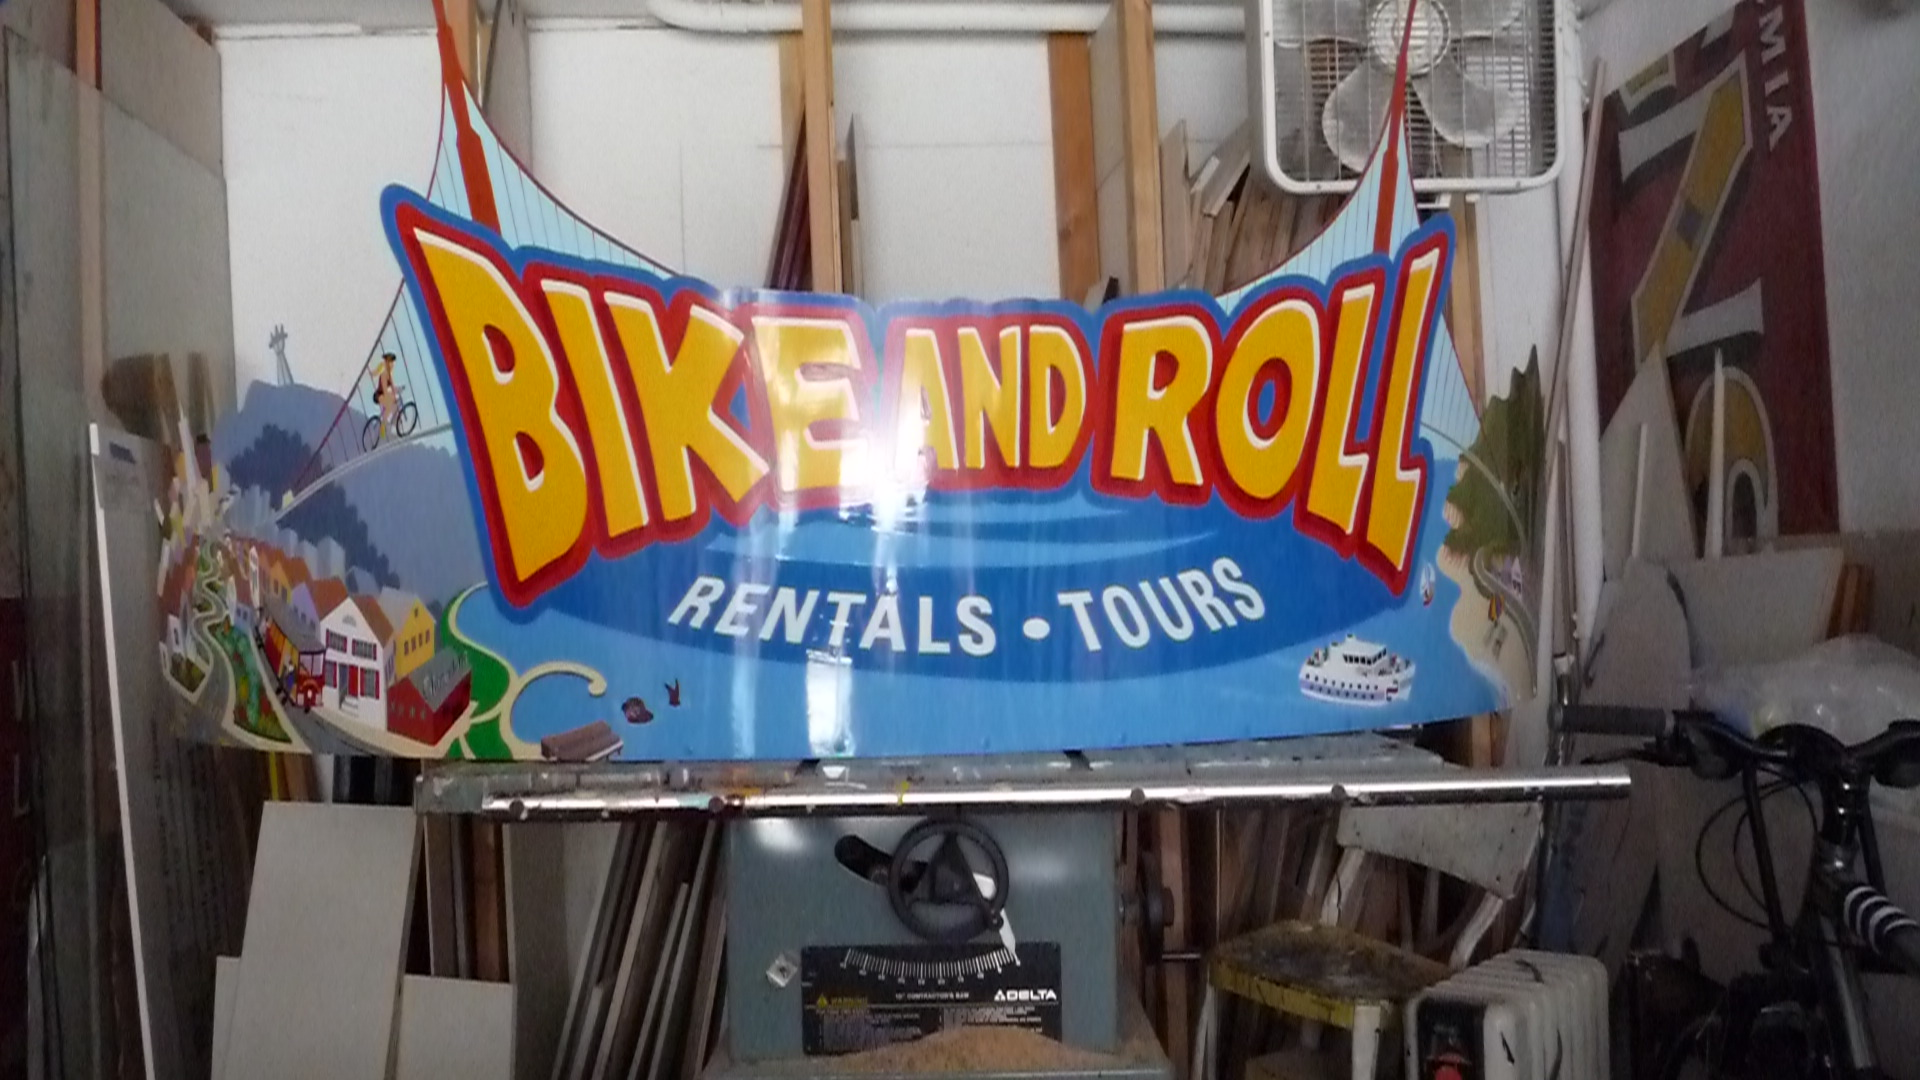 HAND-bike-and-roll-kiosk-roof-sign_3059526867_o.jpg